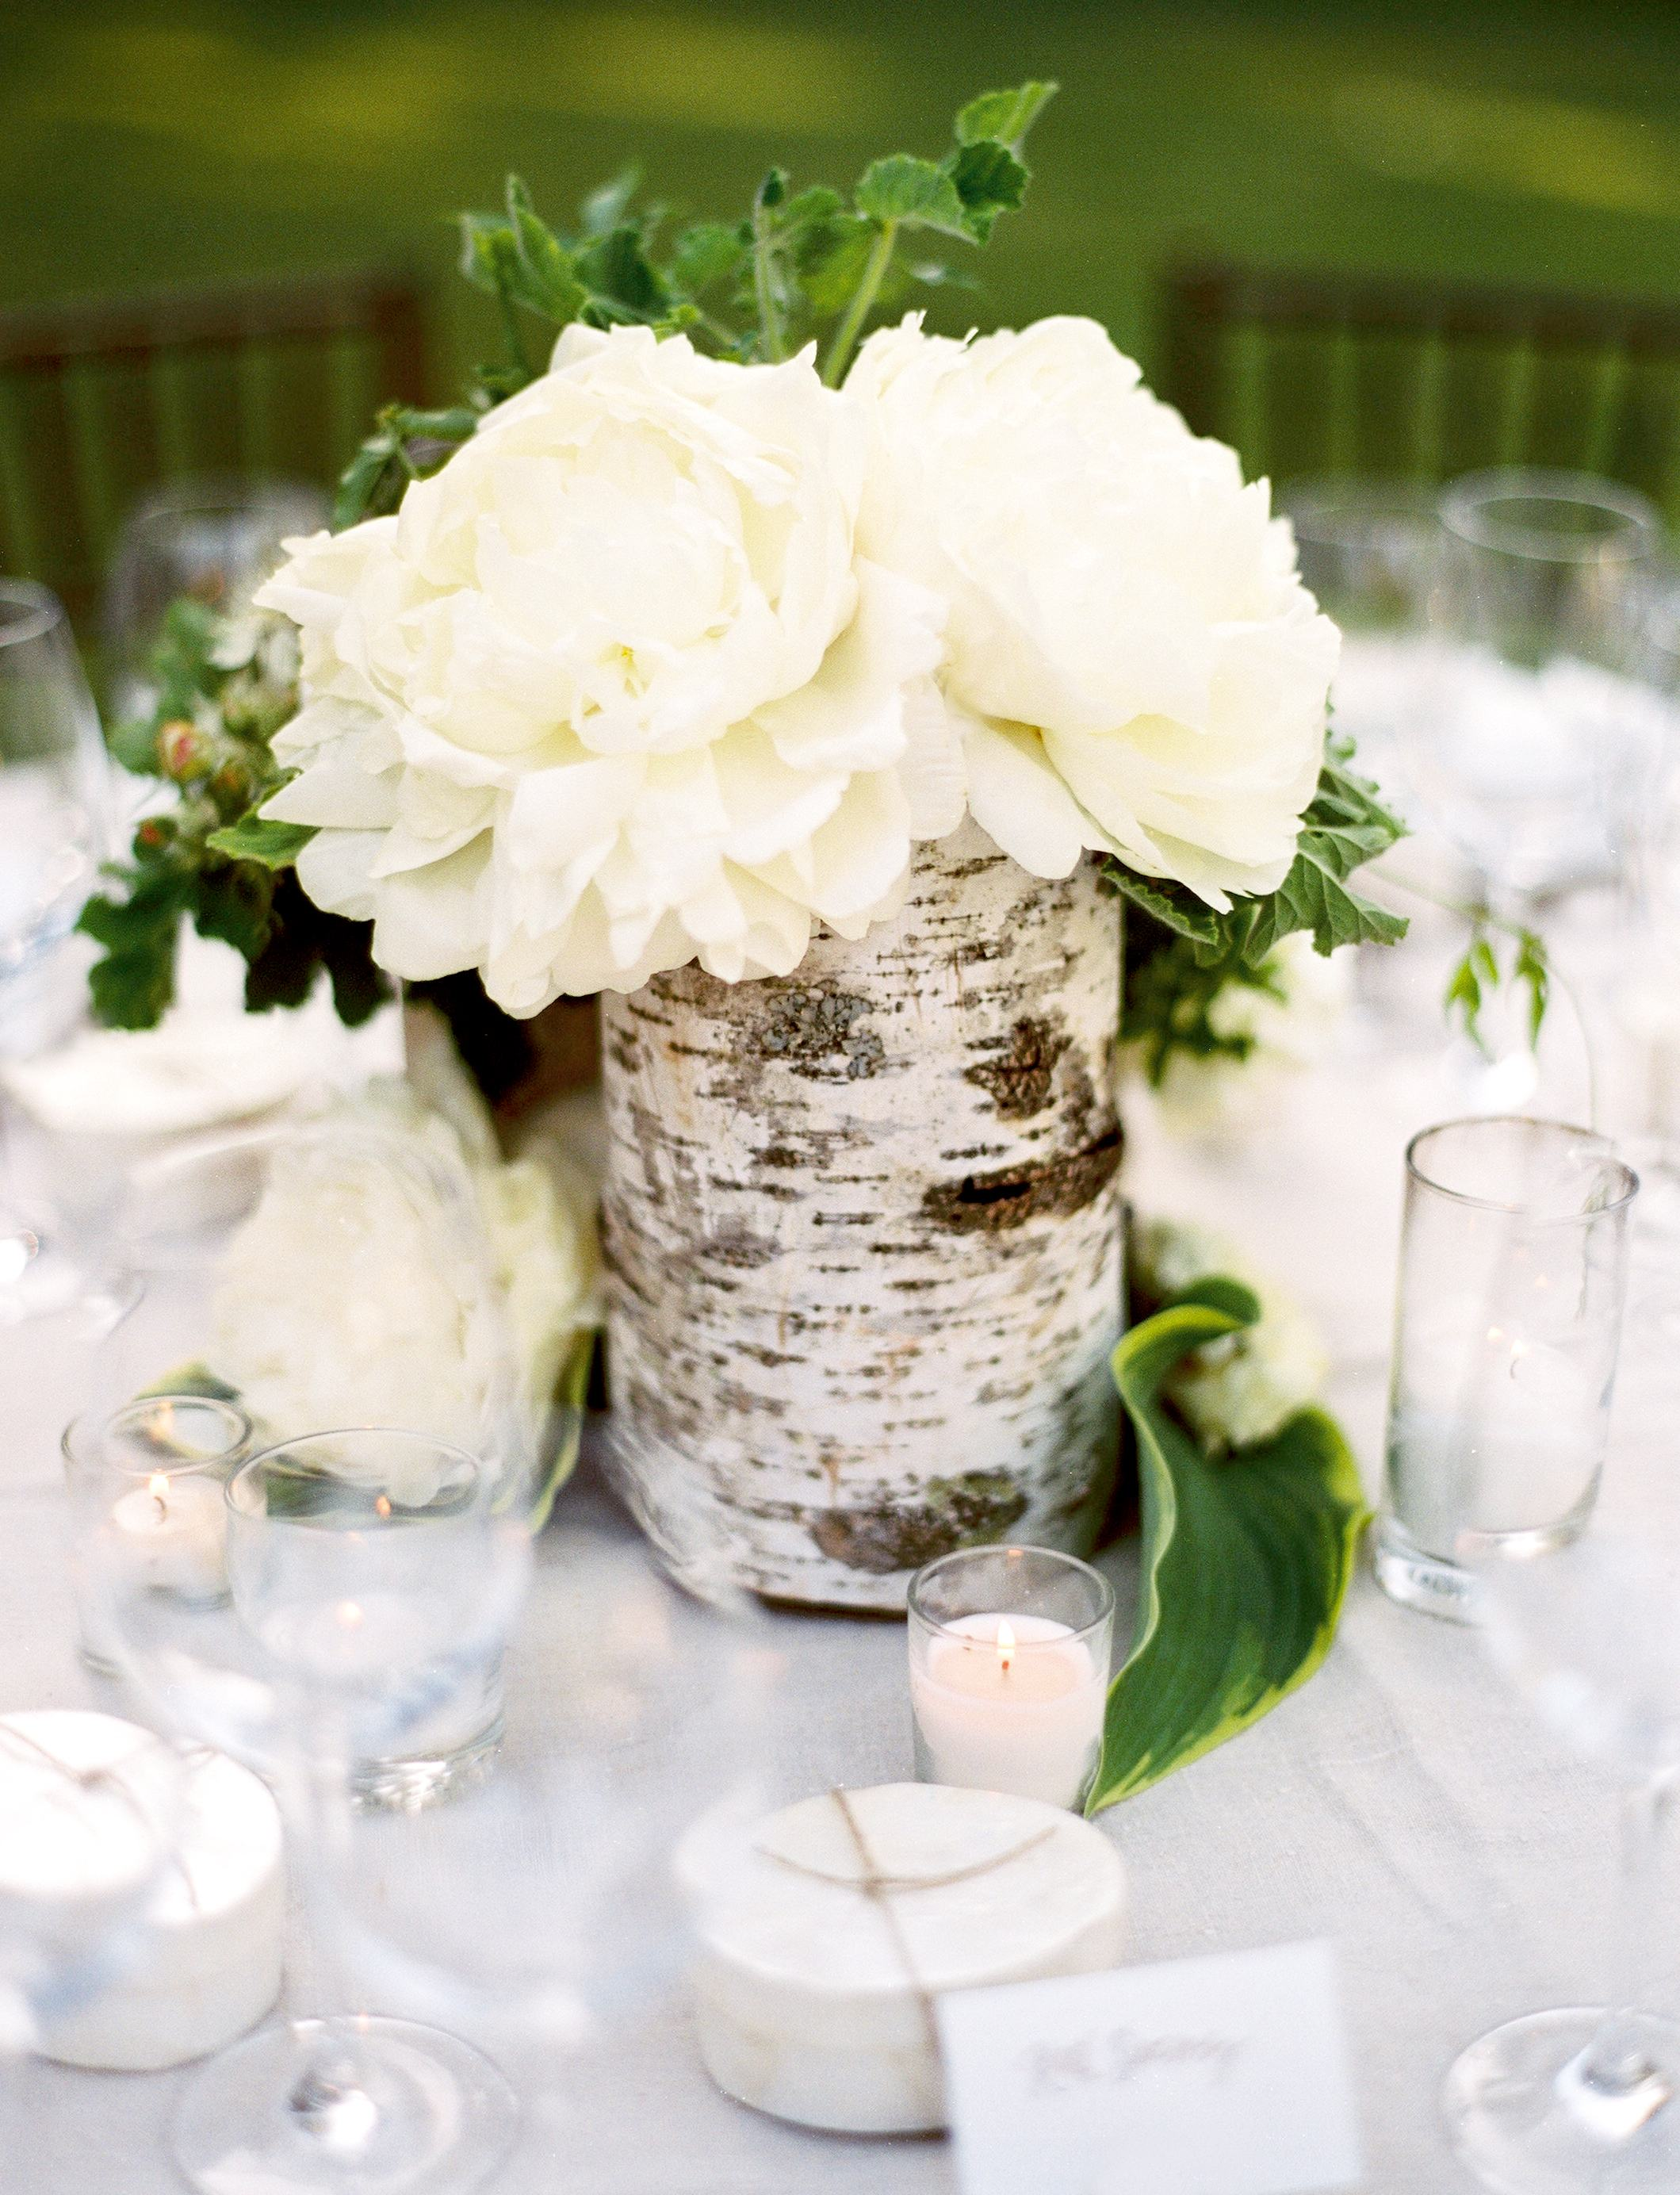 25 Rustic Wedding Centerpieces to Inspire Your Big Day